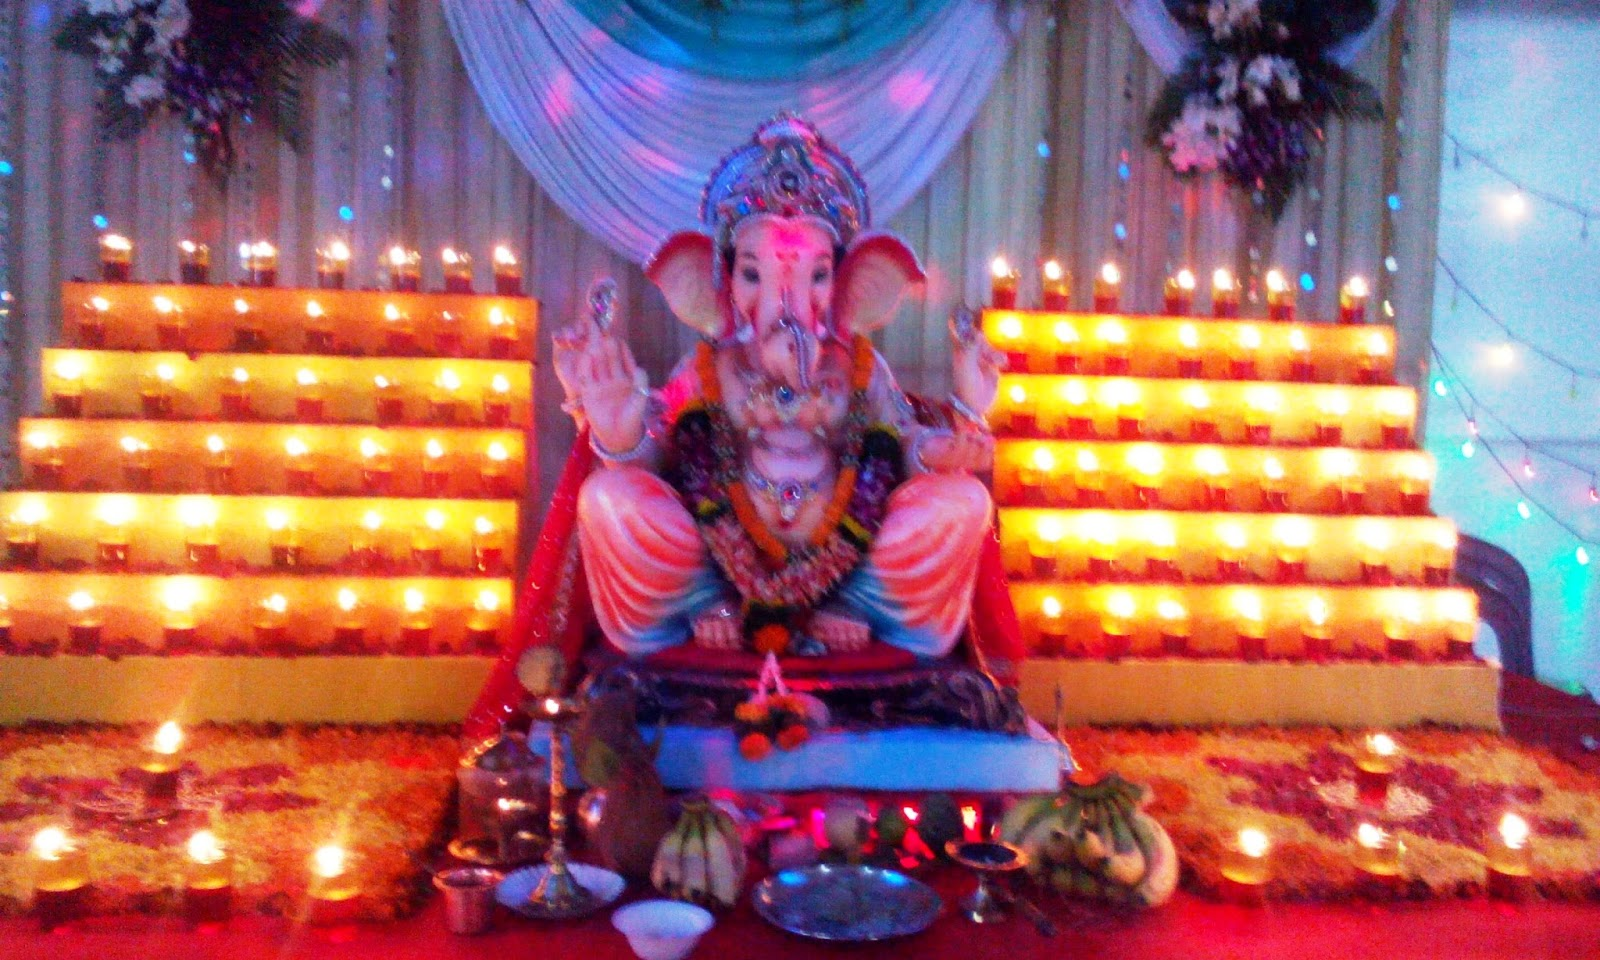 Ganesh Chaturthi was celebrated as a public